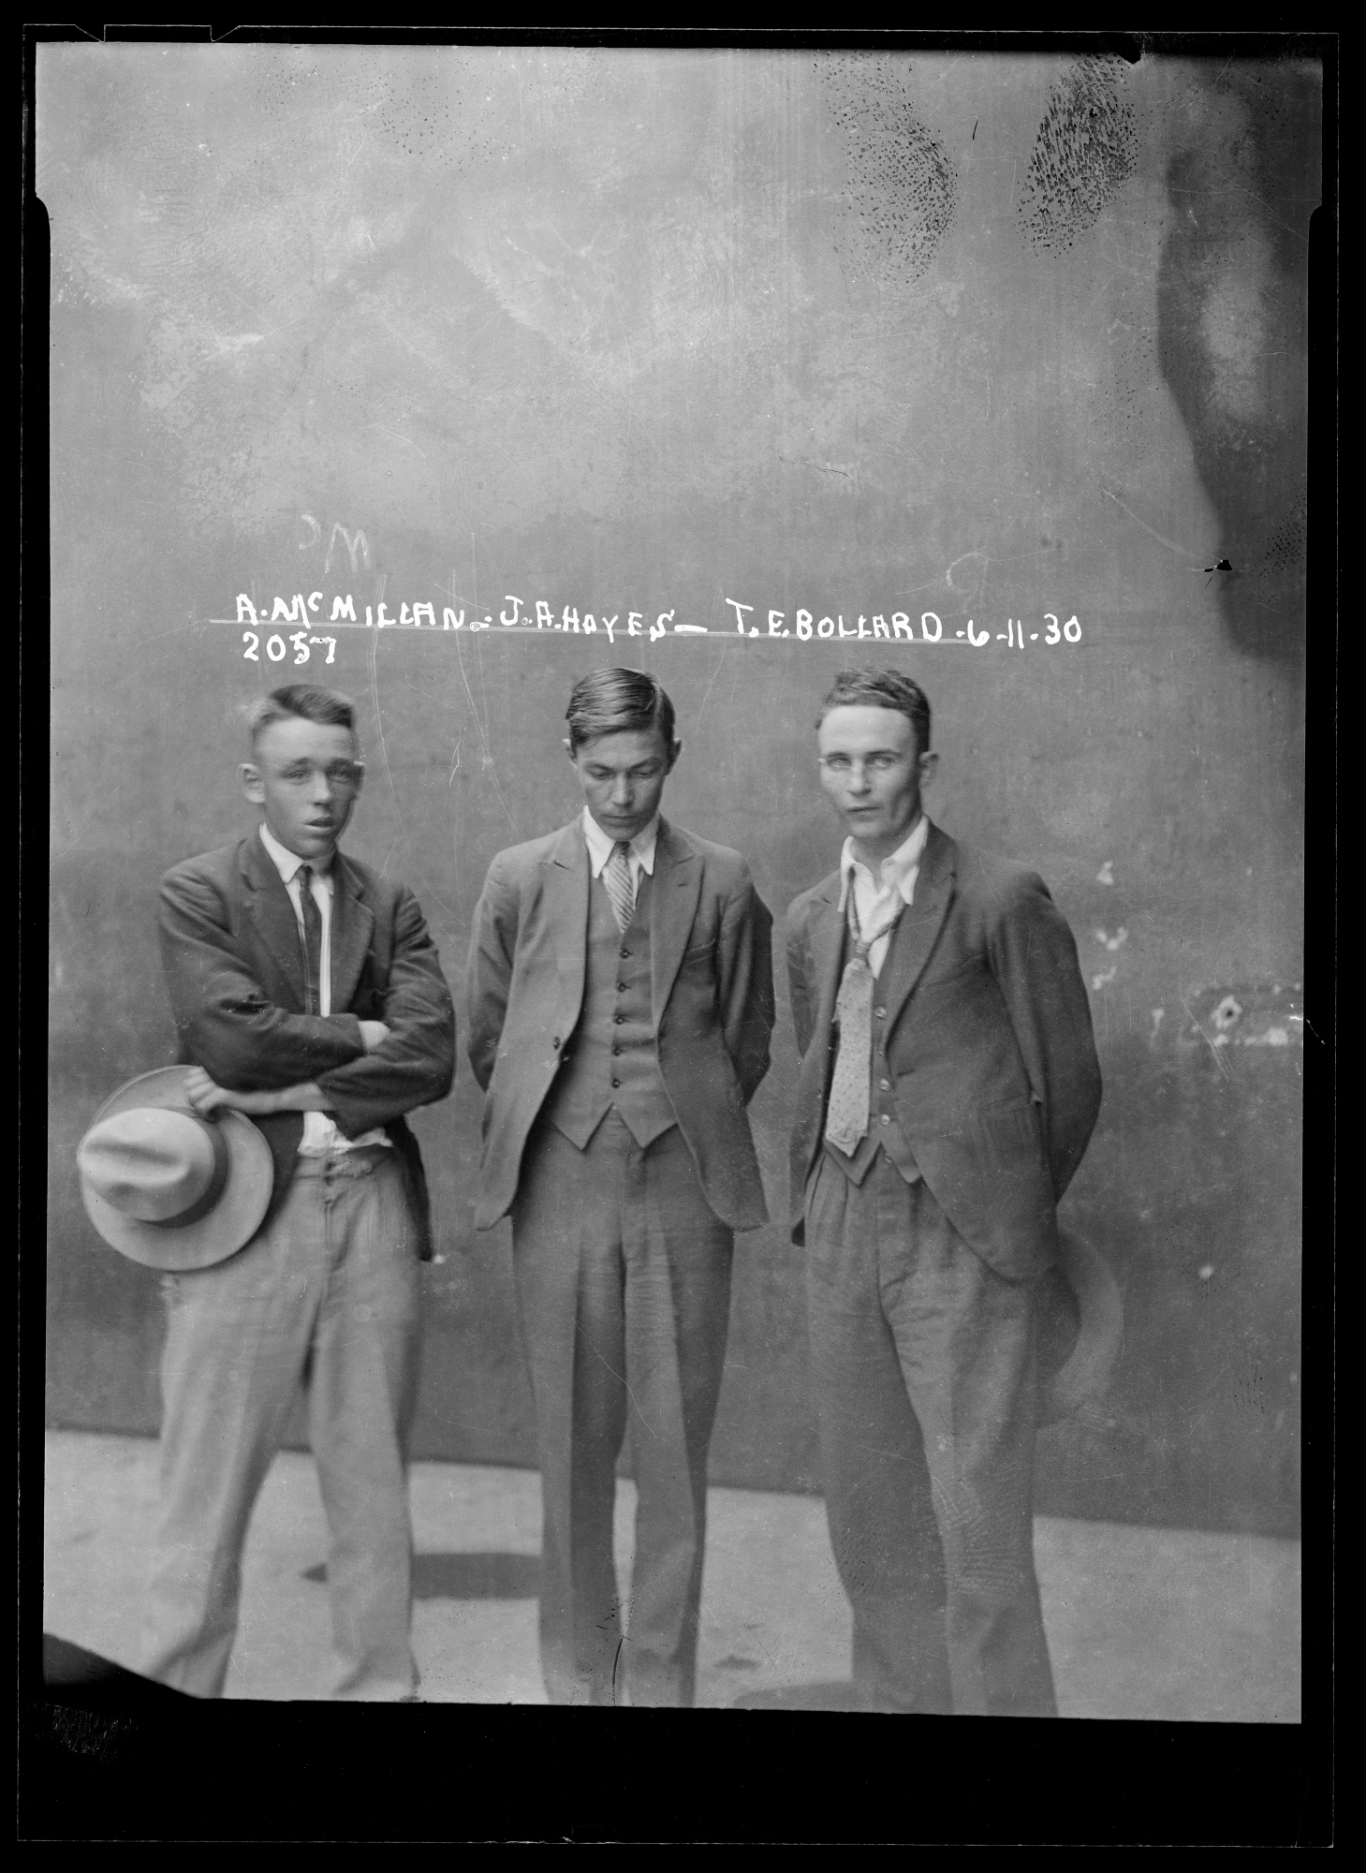 Mugshot of three men standing.